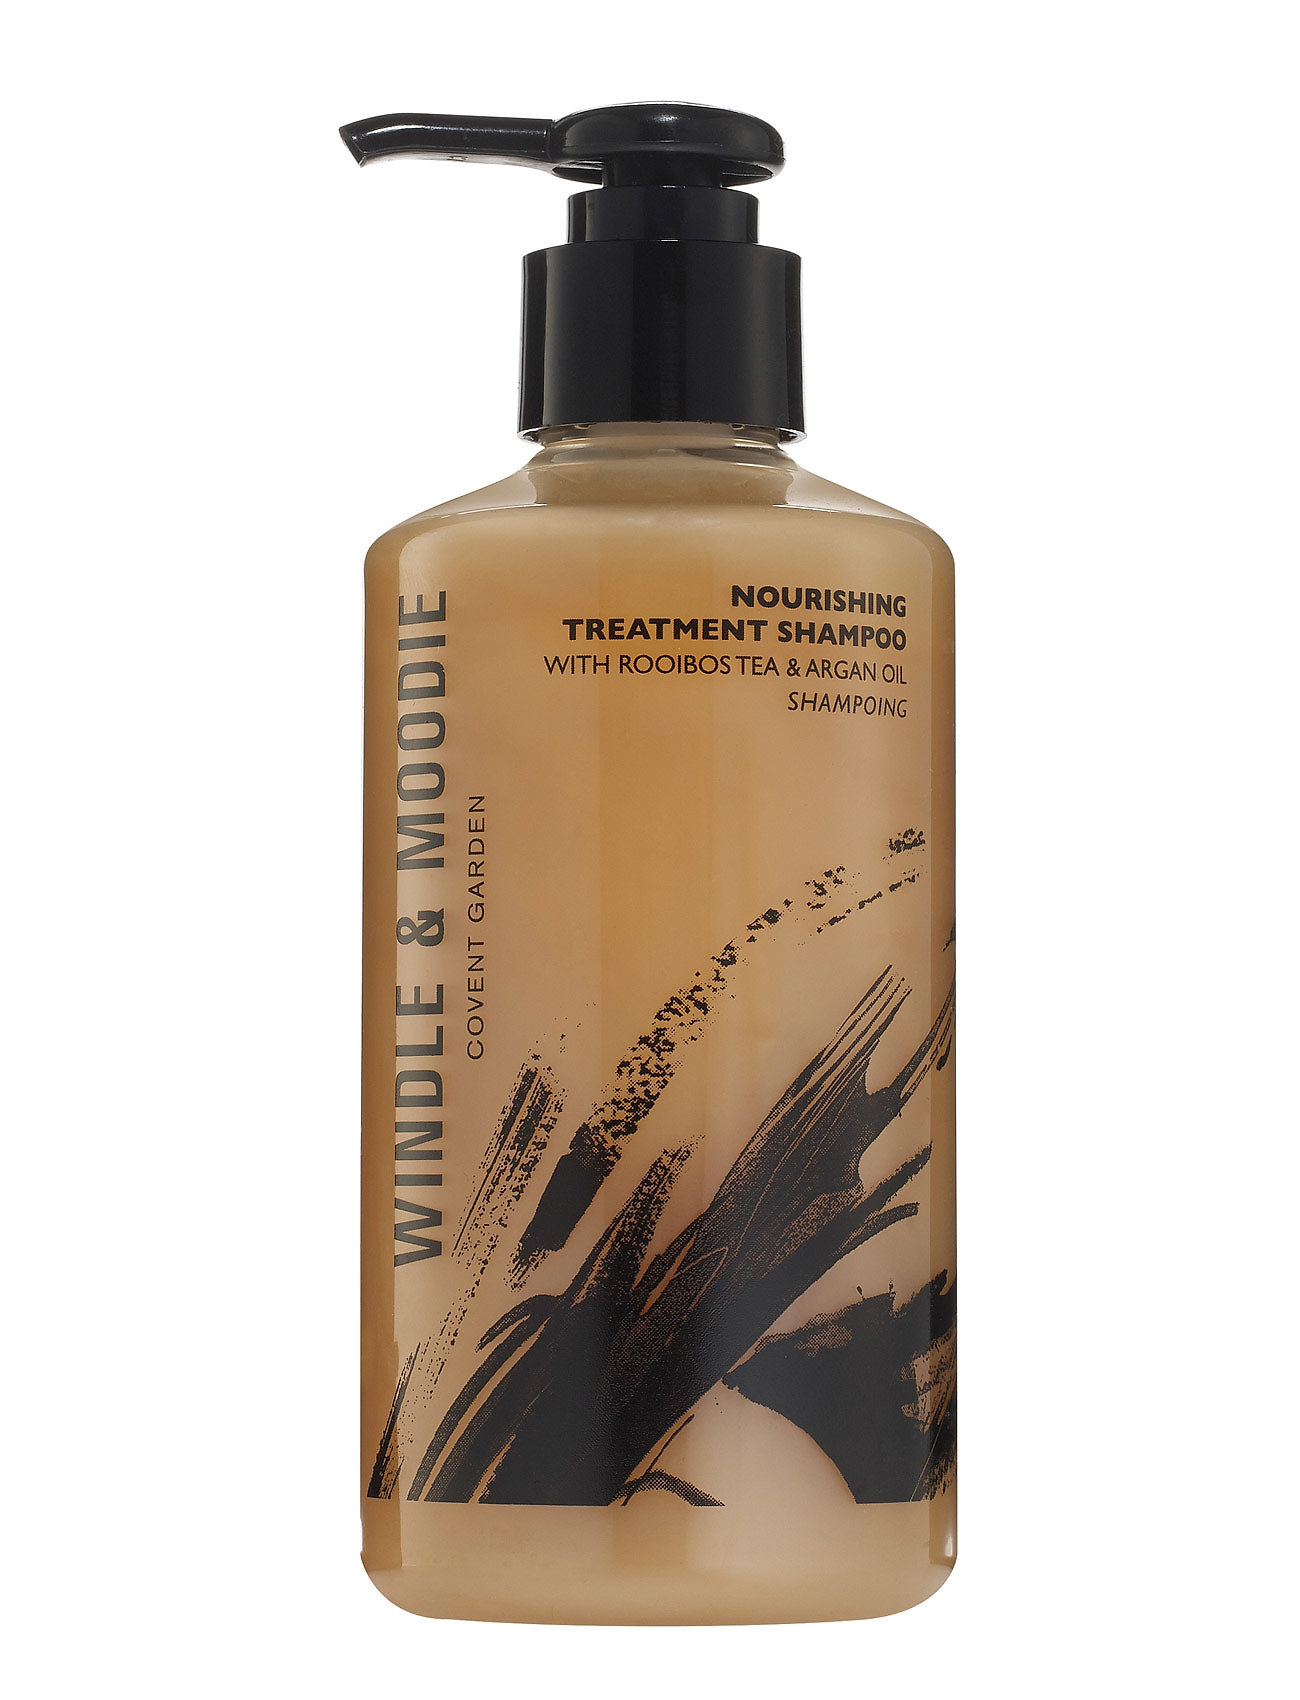 windle & moodie – Nourishing treatment shampoo på boozt.com dk